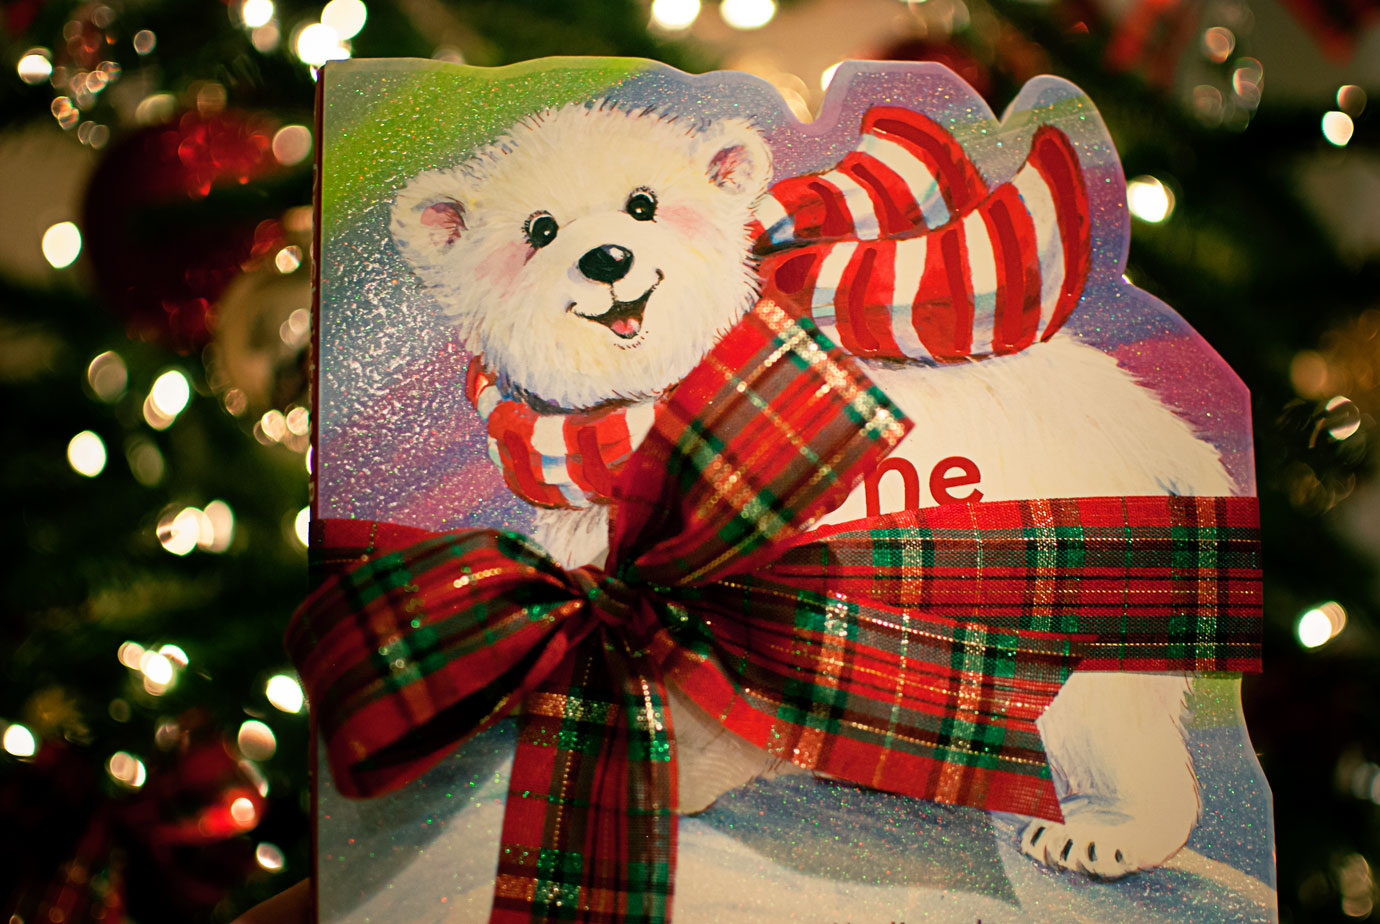 One Christmas Bear a Cute and Cuddly Christmas Polar Bear Story Book #OneChristmasBear #ChristmasBook #ChristmasTraditions